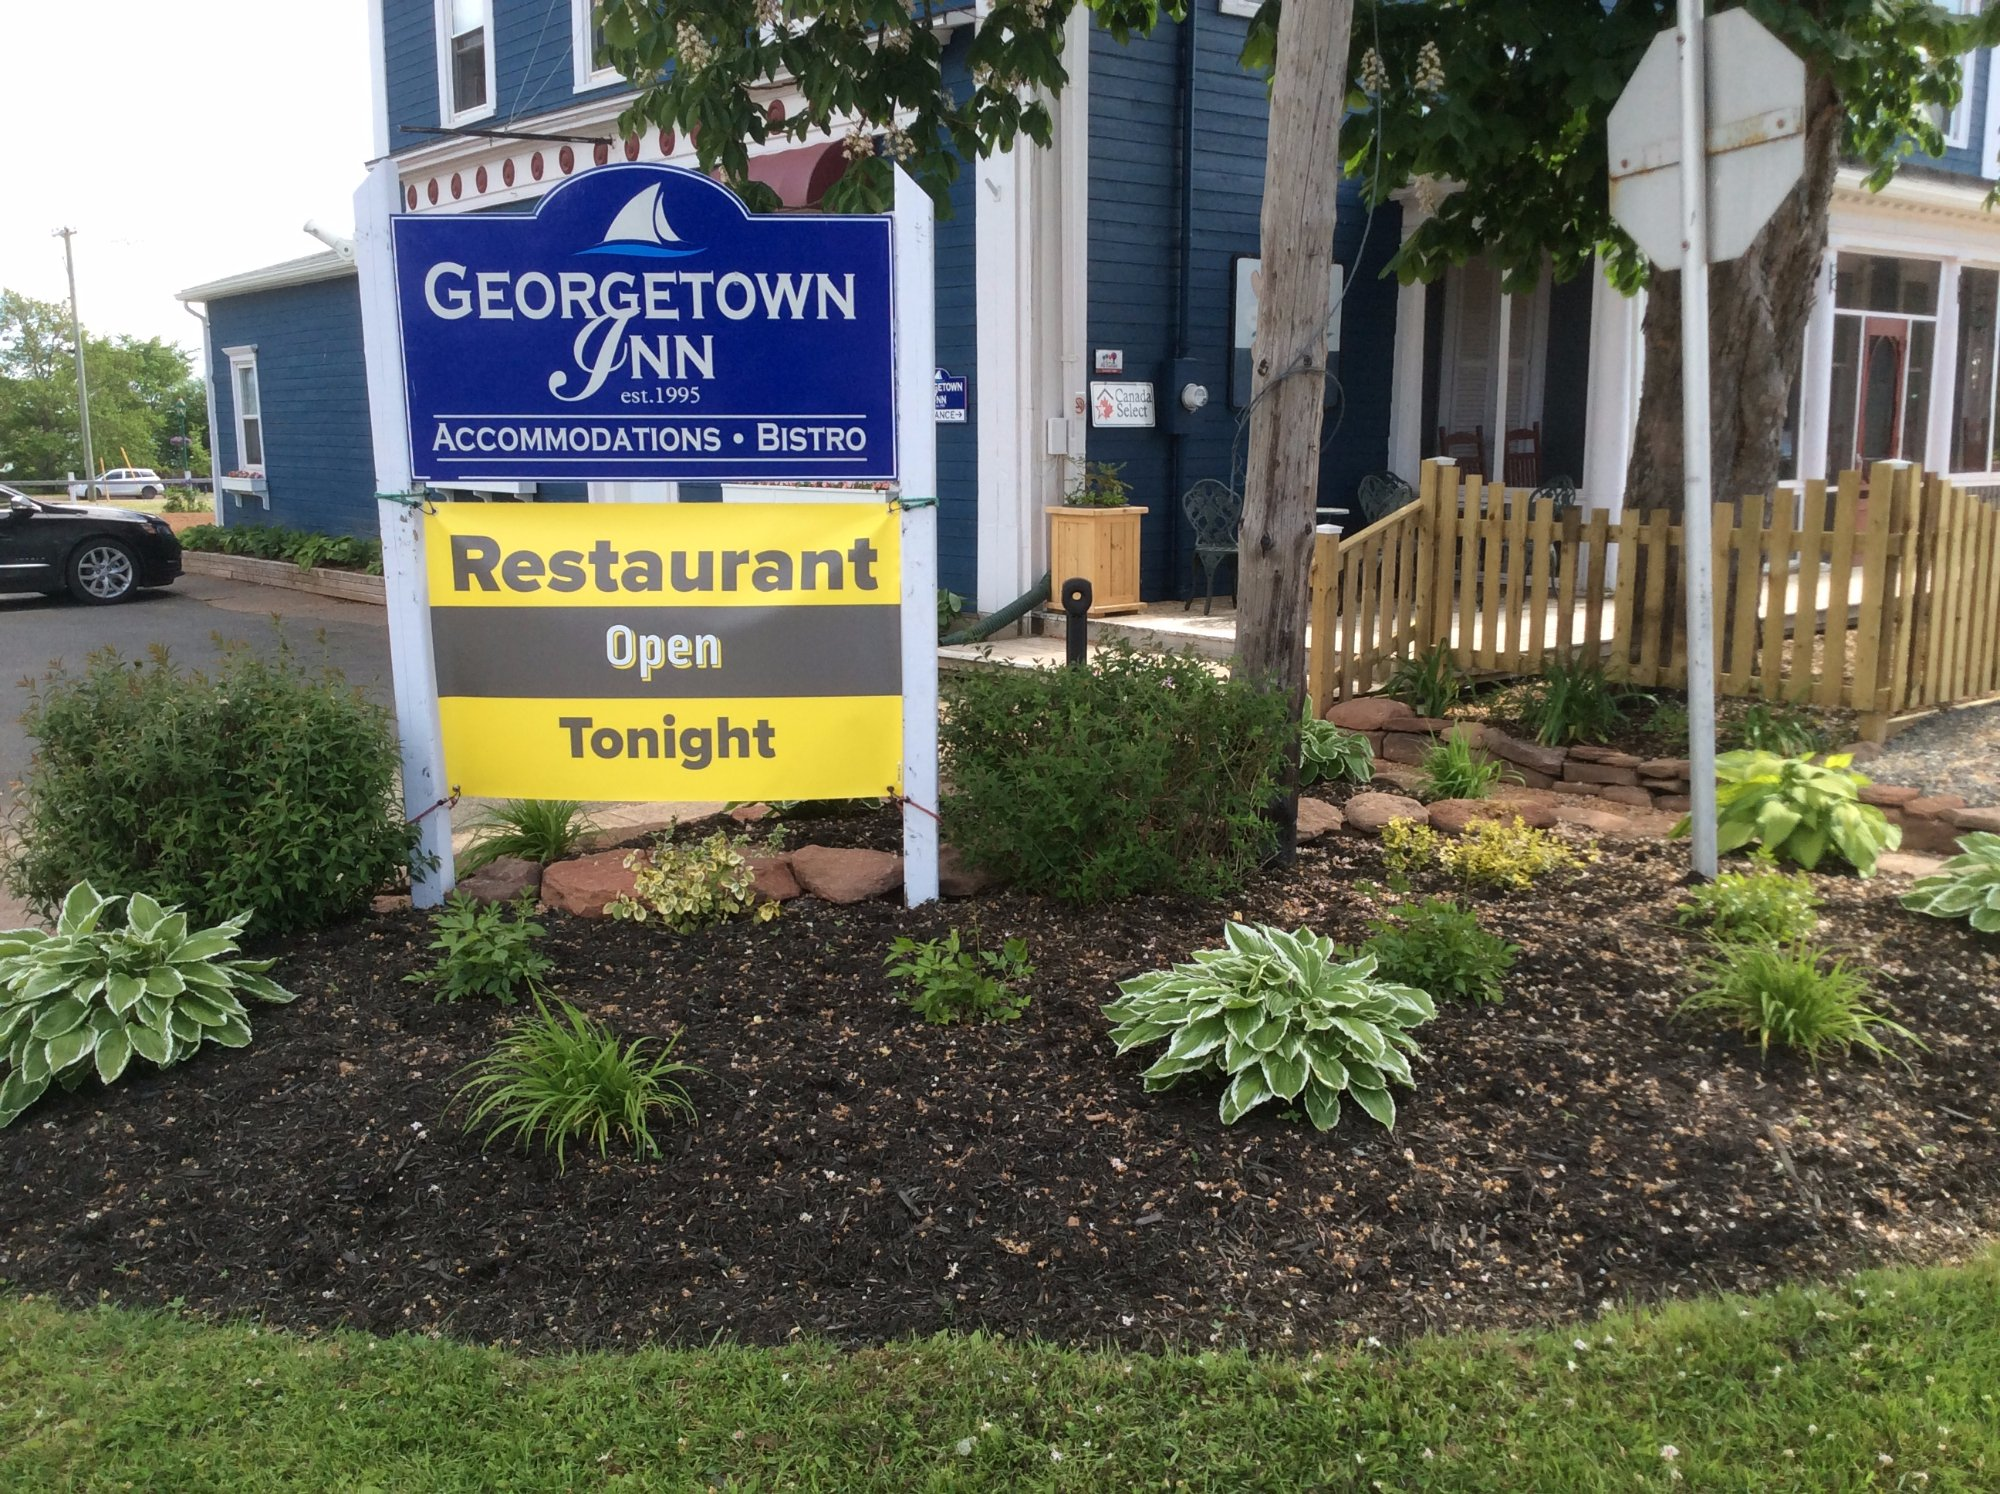 Georgetown Historic Inn